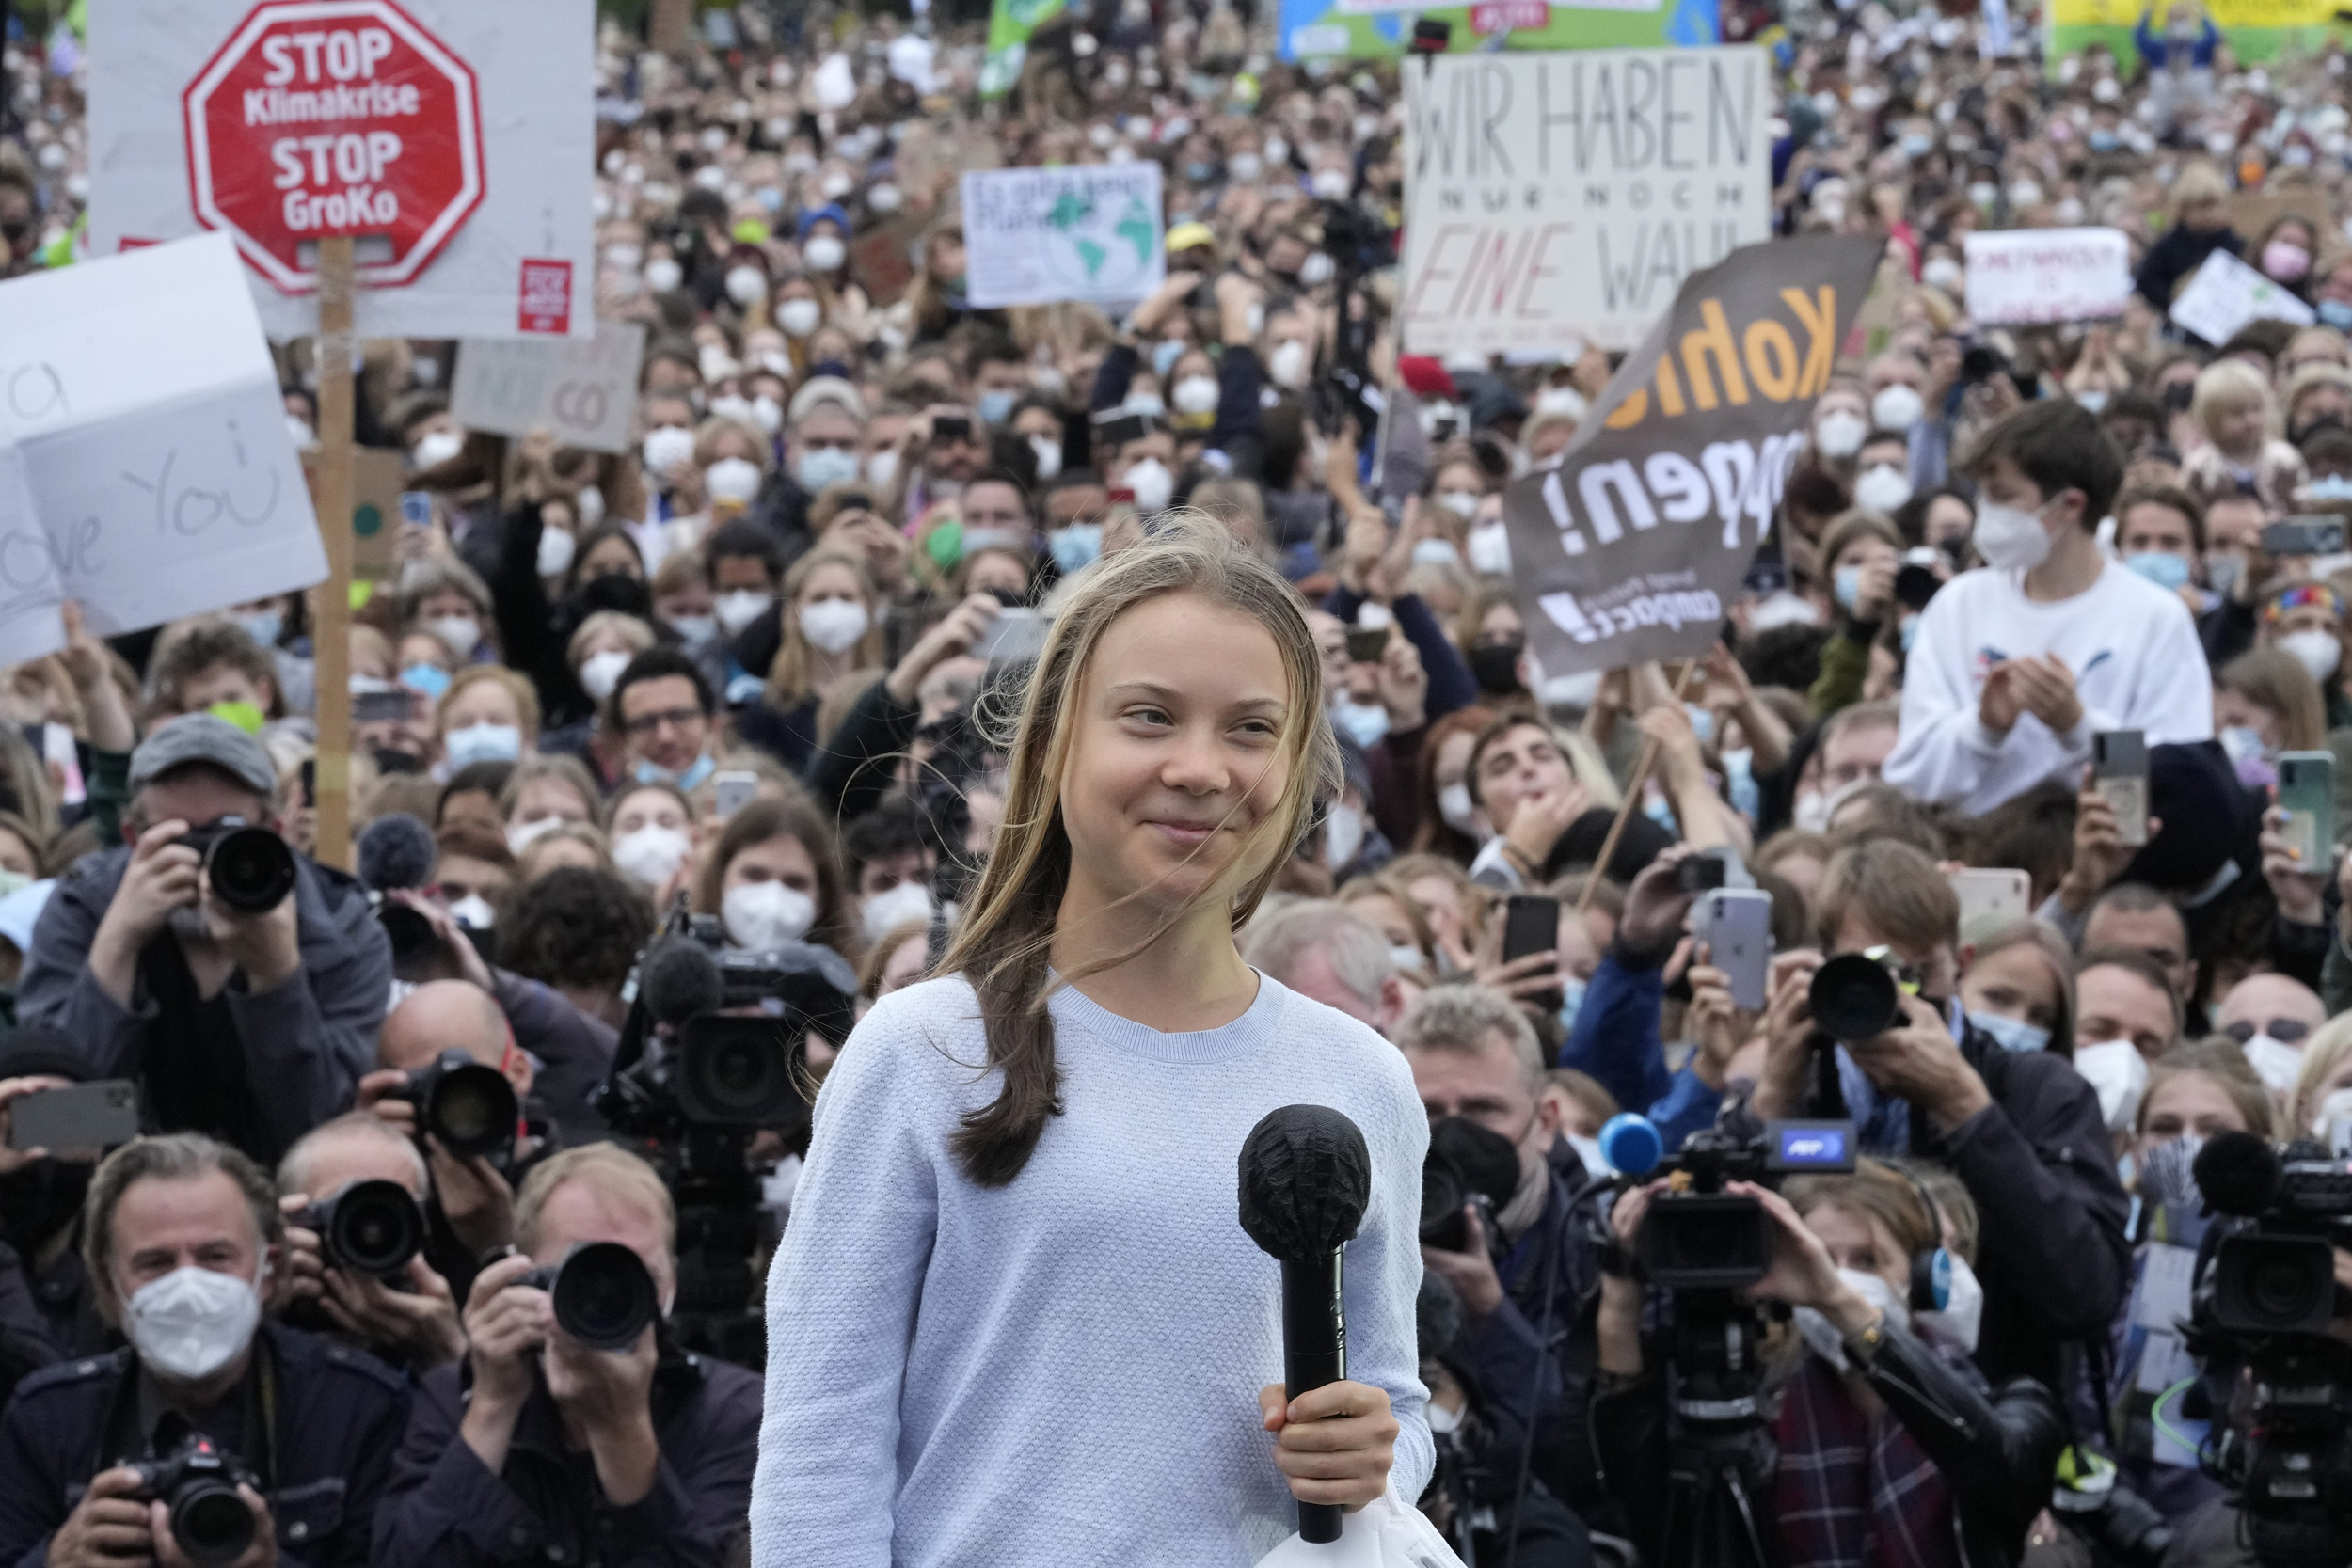 'Frustrated and angry': After Covid break, young climate activists pick up the fight